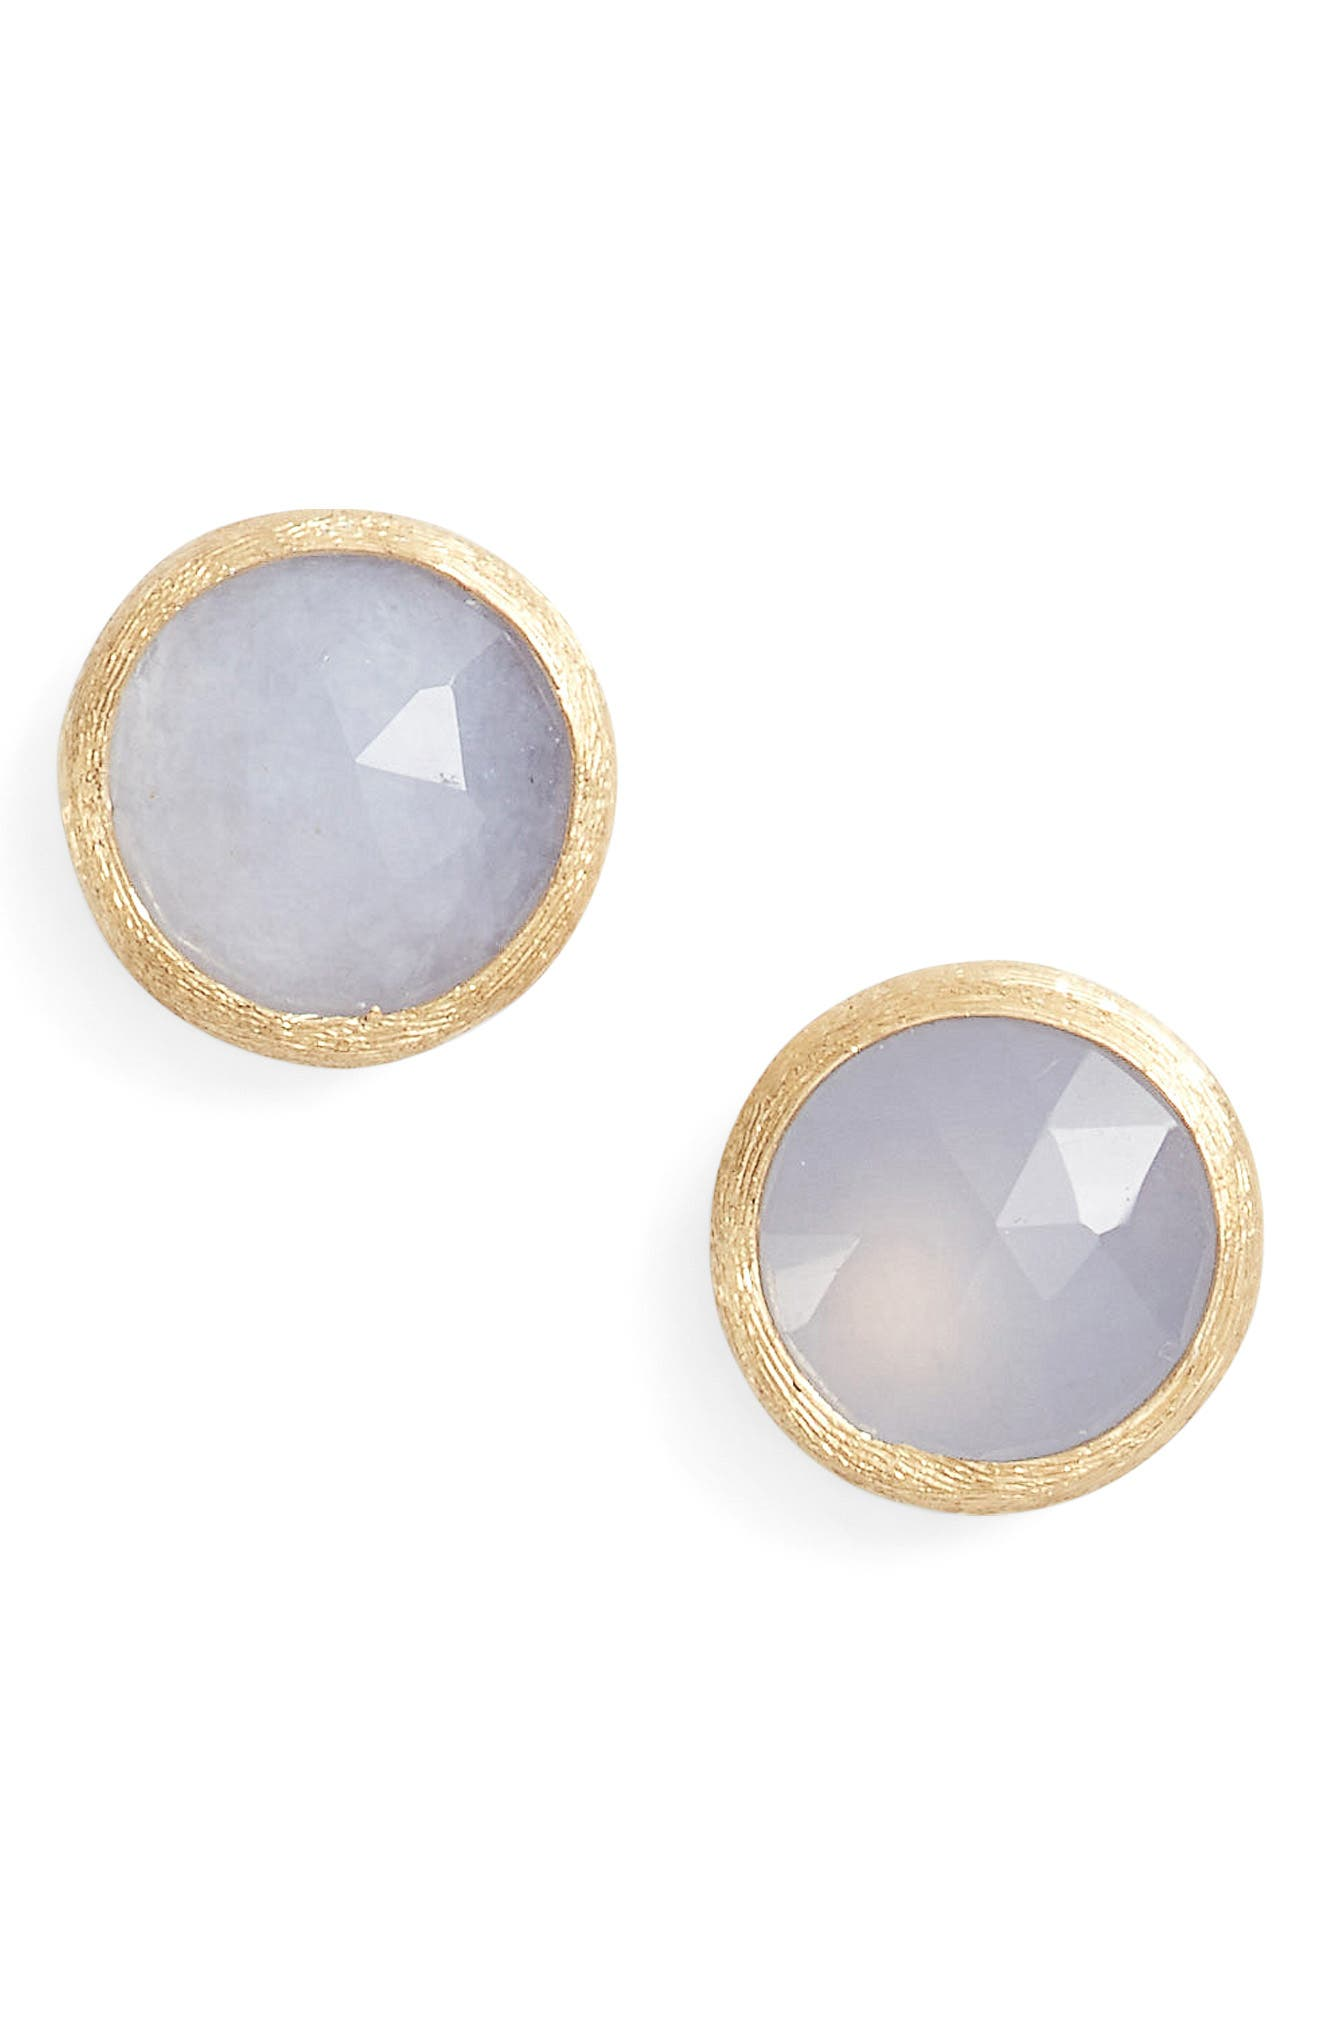 Marco Bicego 'Jaipur' Stone Stud Earrings